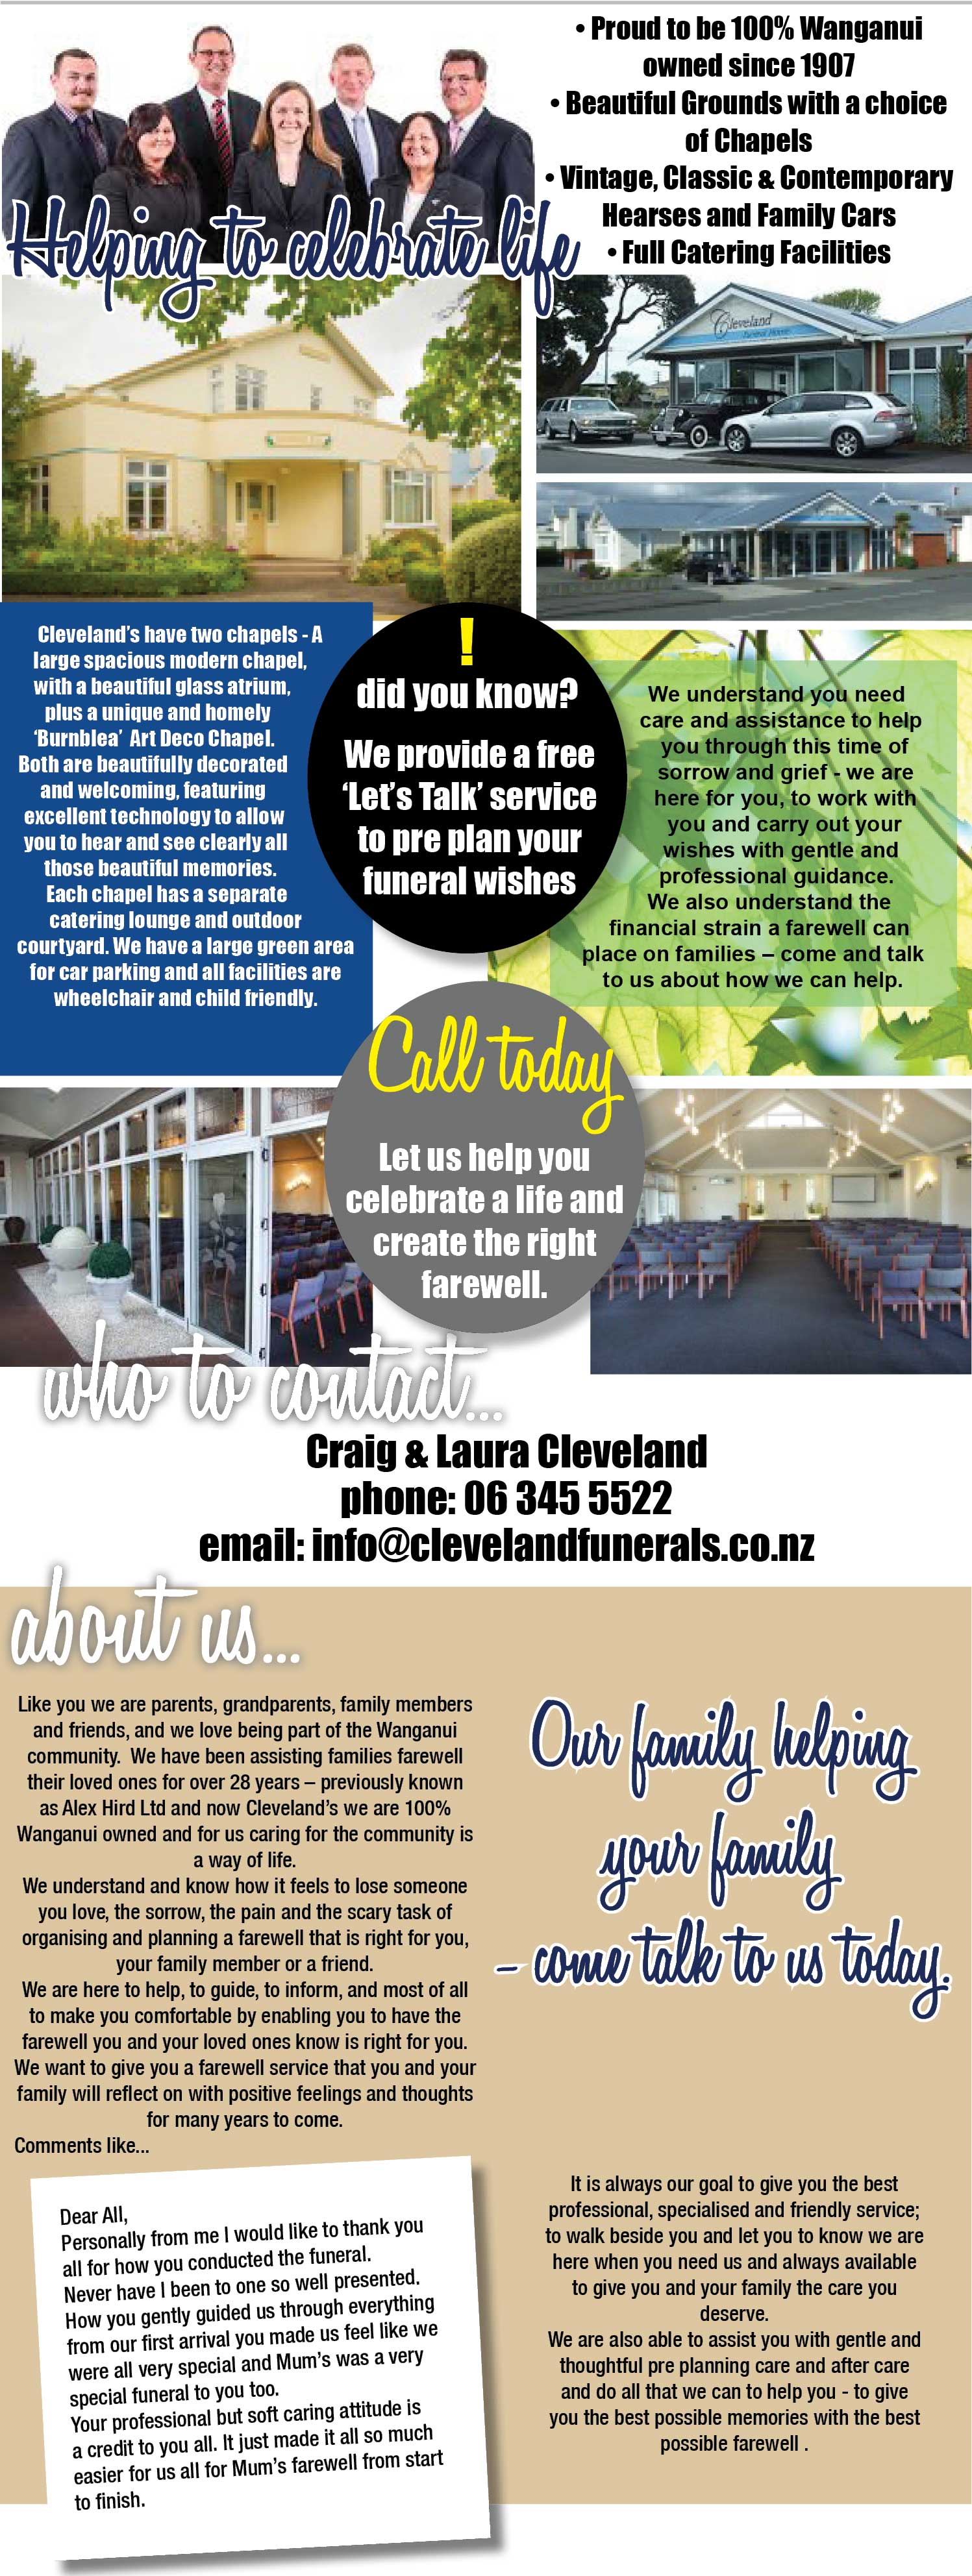 Cleveland Funeral Home. Funeral homes Wanganui. Wanganui's funeral home of choice. We have beautiful facilities and grounds. Fully qualified professional staff. Private chapel, catering services, natural, green funerals.